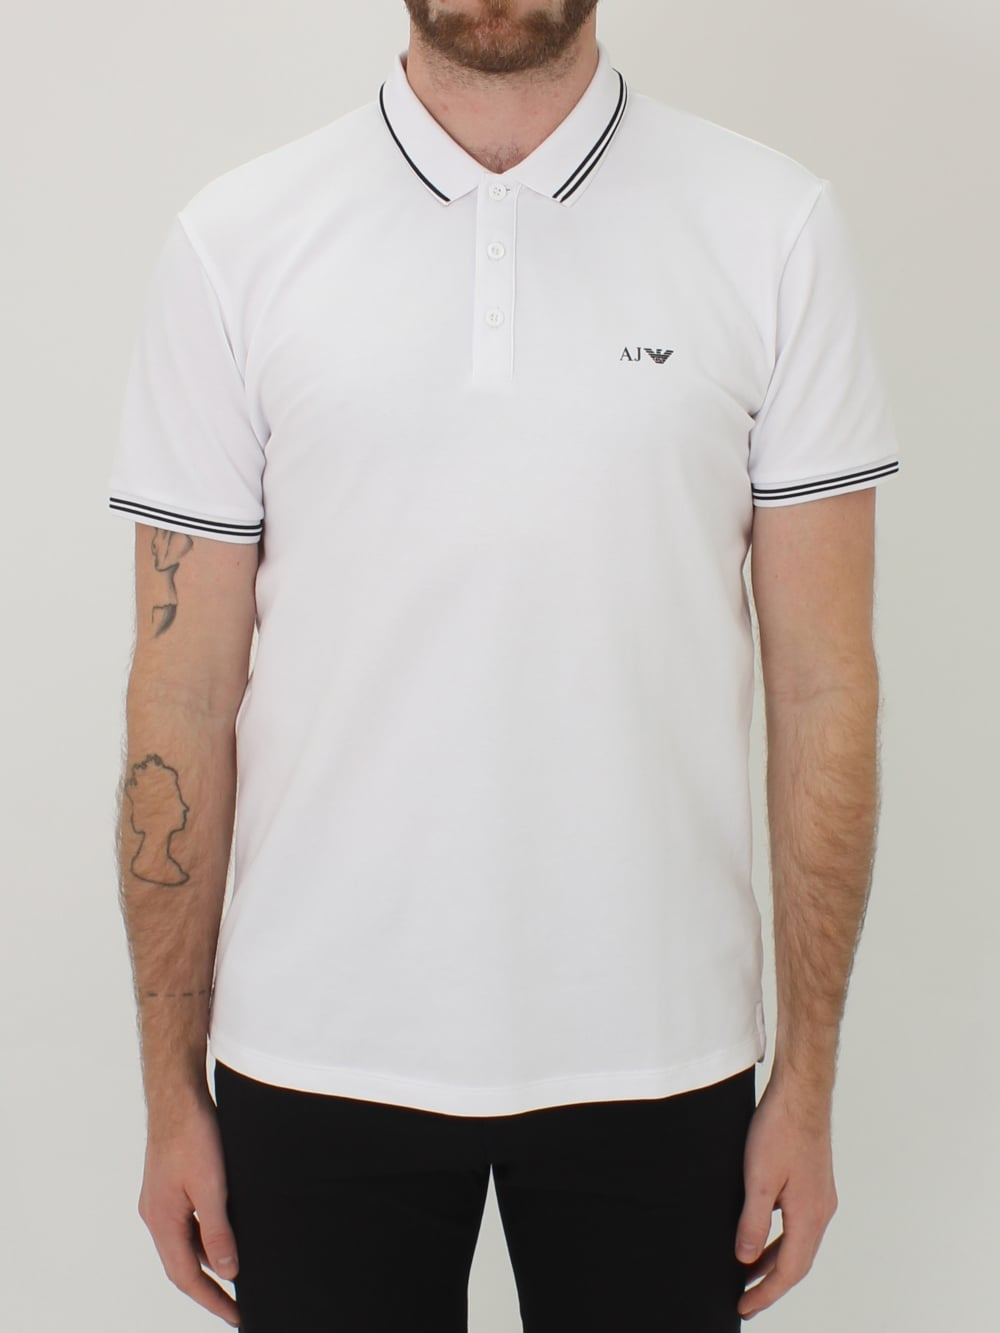 c166560d Armani Jeans Tipped Pique Logo Polo in White - Northern Threads